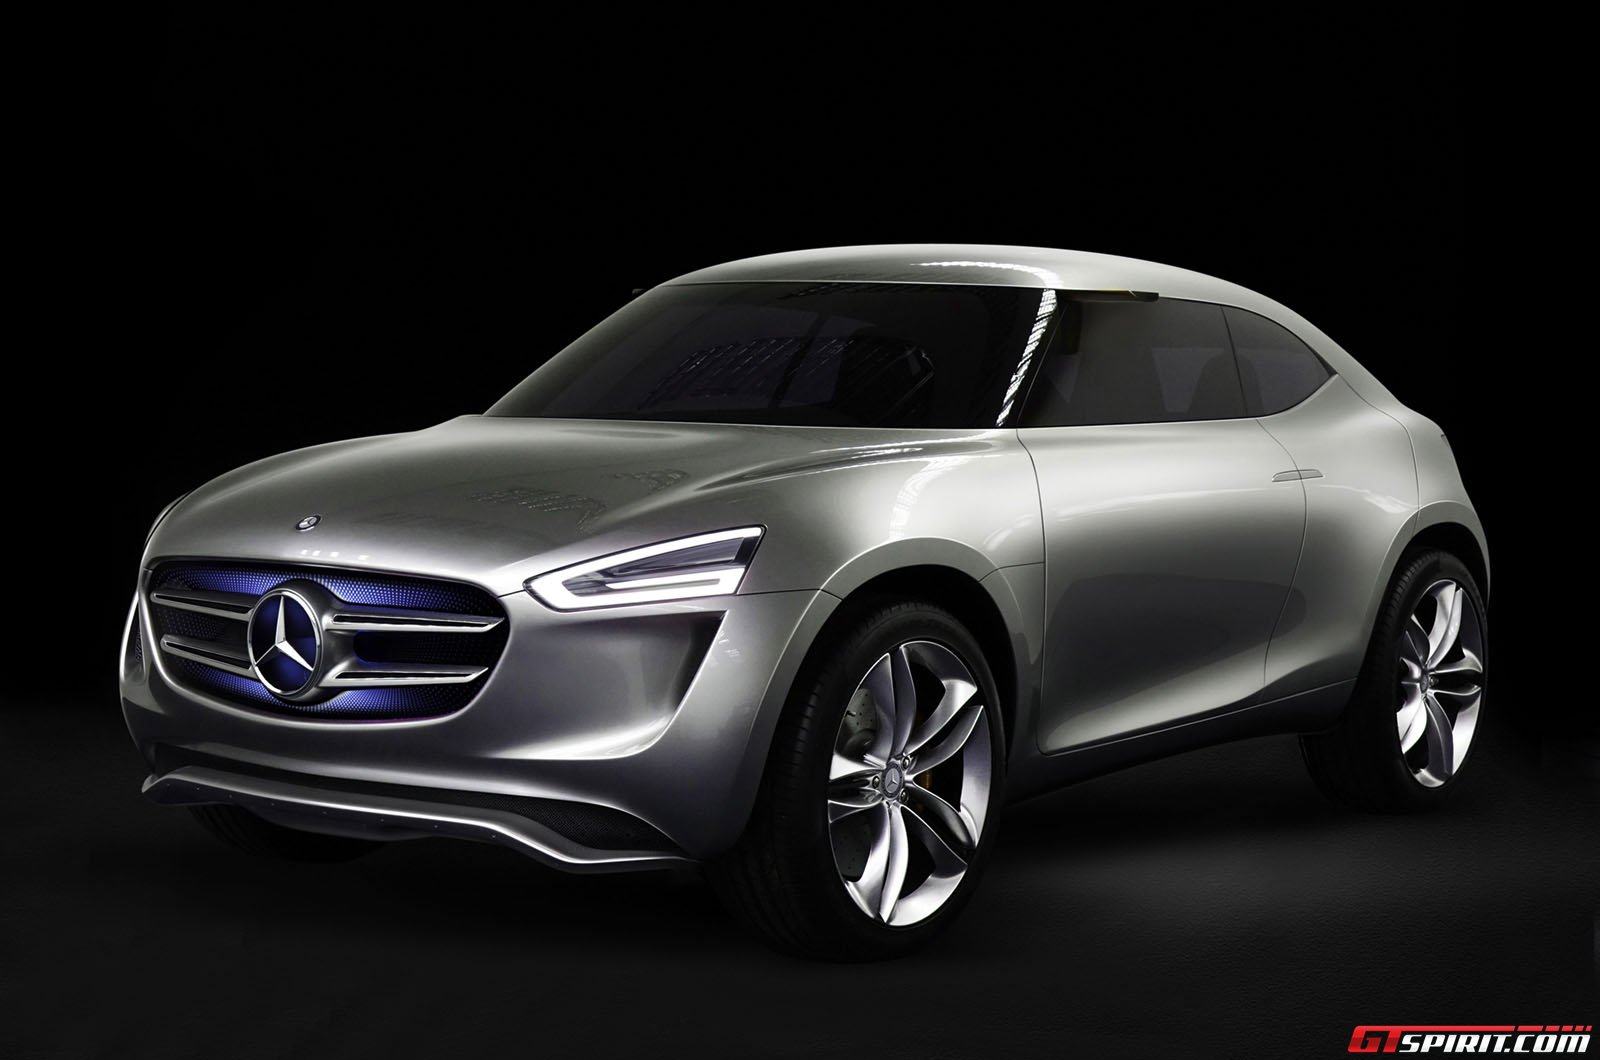 12 new mercedes benz models to be launched by 2020 gtspirit for Mercedes benz cars images